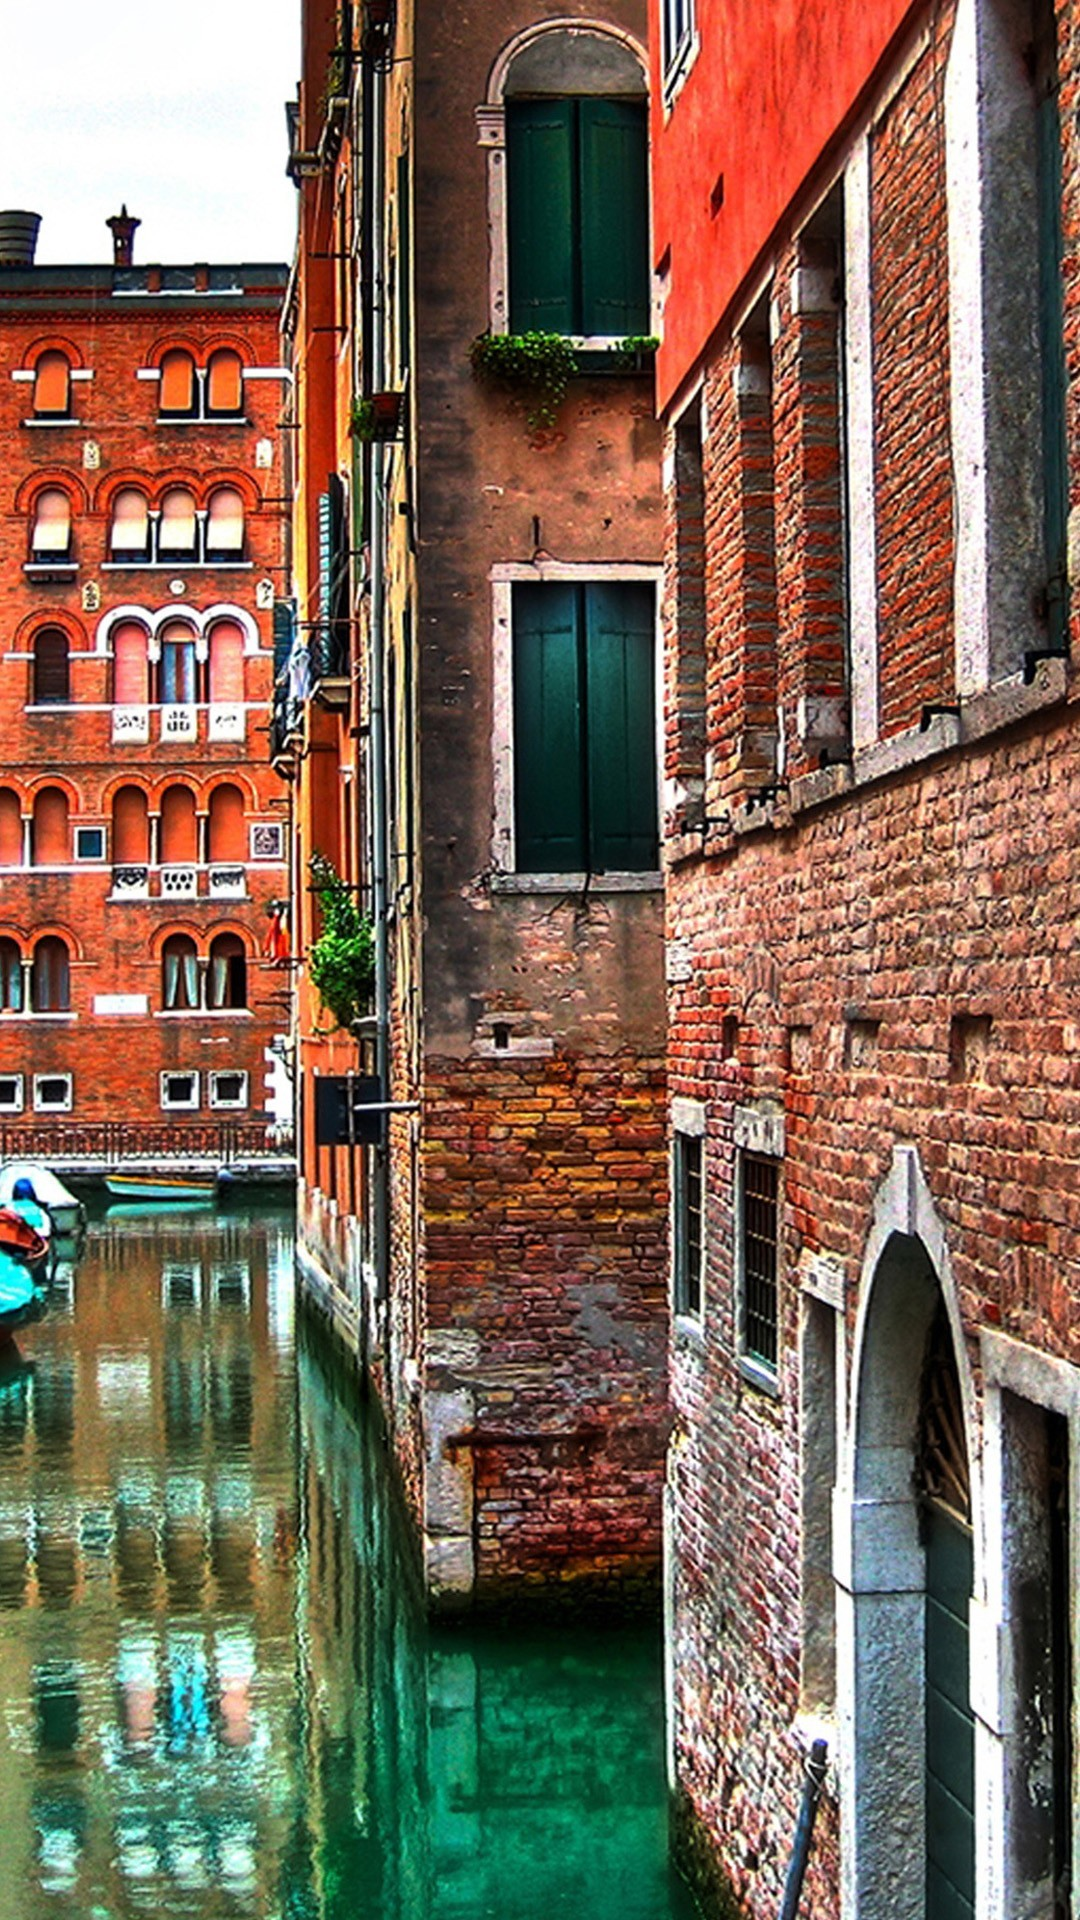 1080x1920 Architecture iPhone 6 Plus Wallpapers - Venice Street Buildings Red Brick  iPhone 6 Plus HD Wallpaper